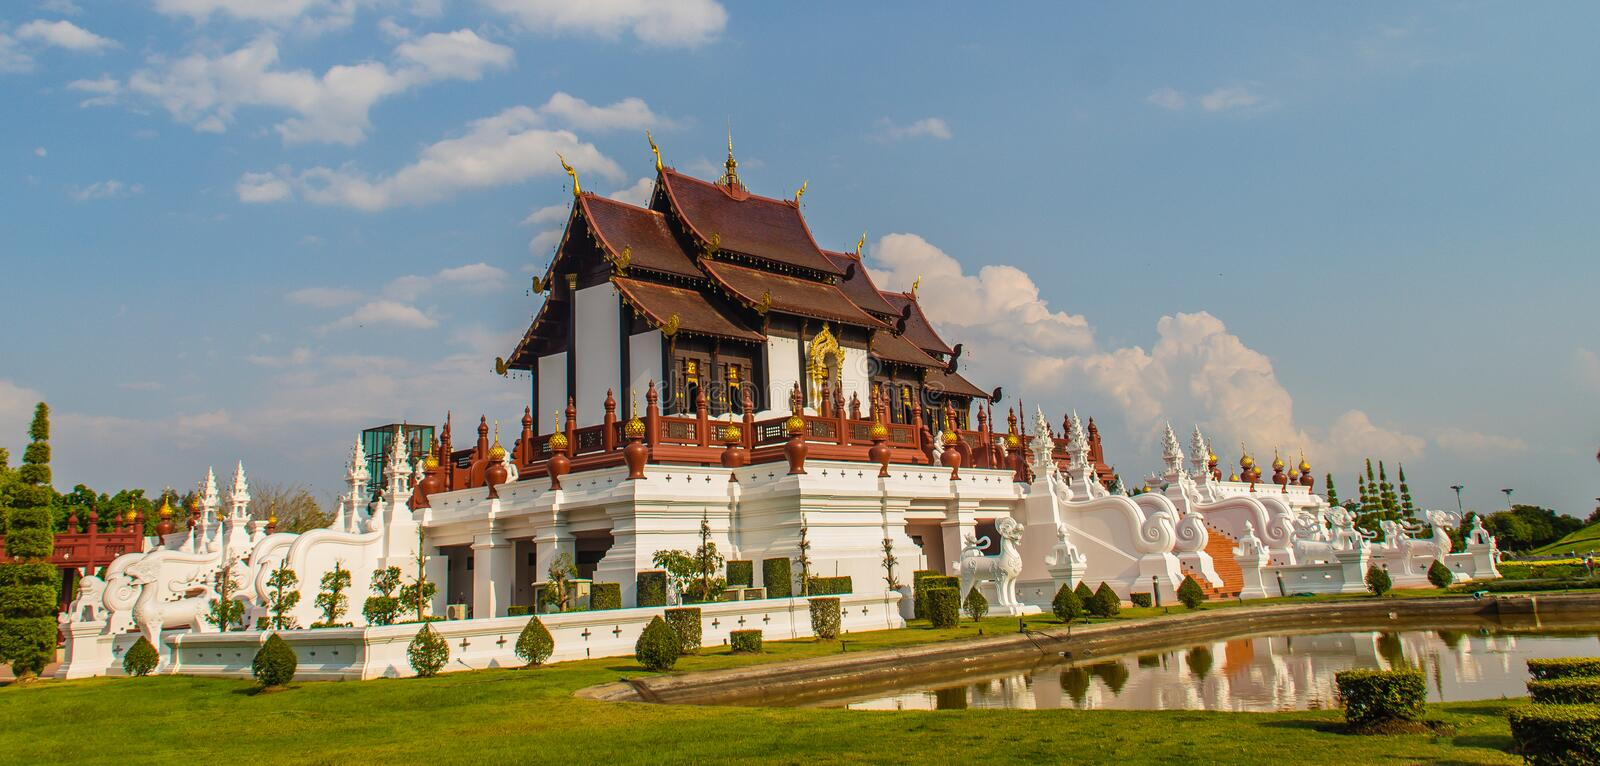 Beautiful architectural of Ho Kham Luang, the royal pavilion in lanna style building at the royal flora international horticulture stock photos